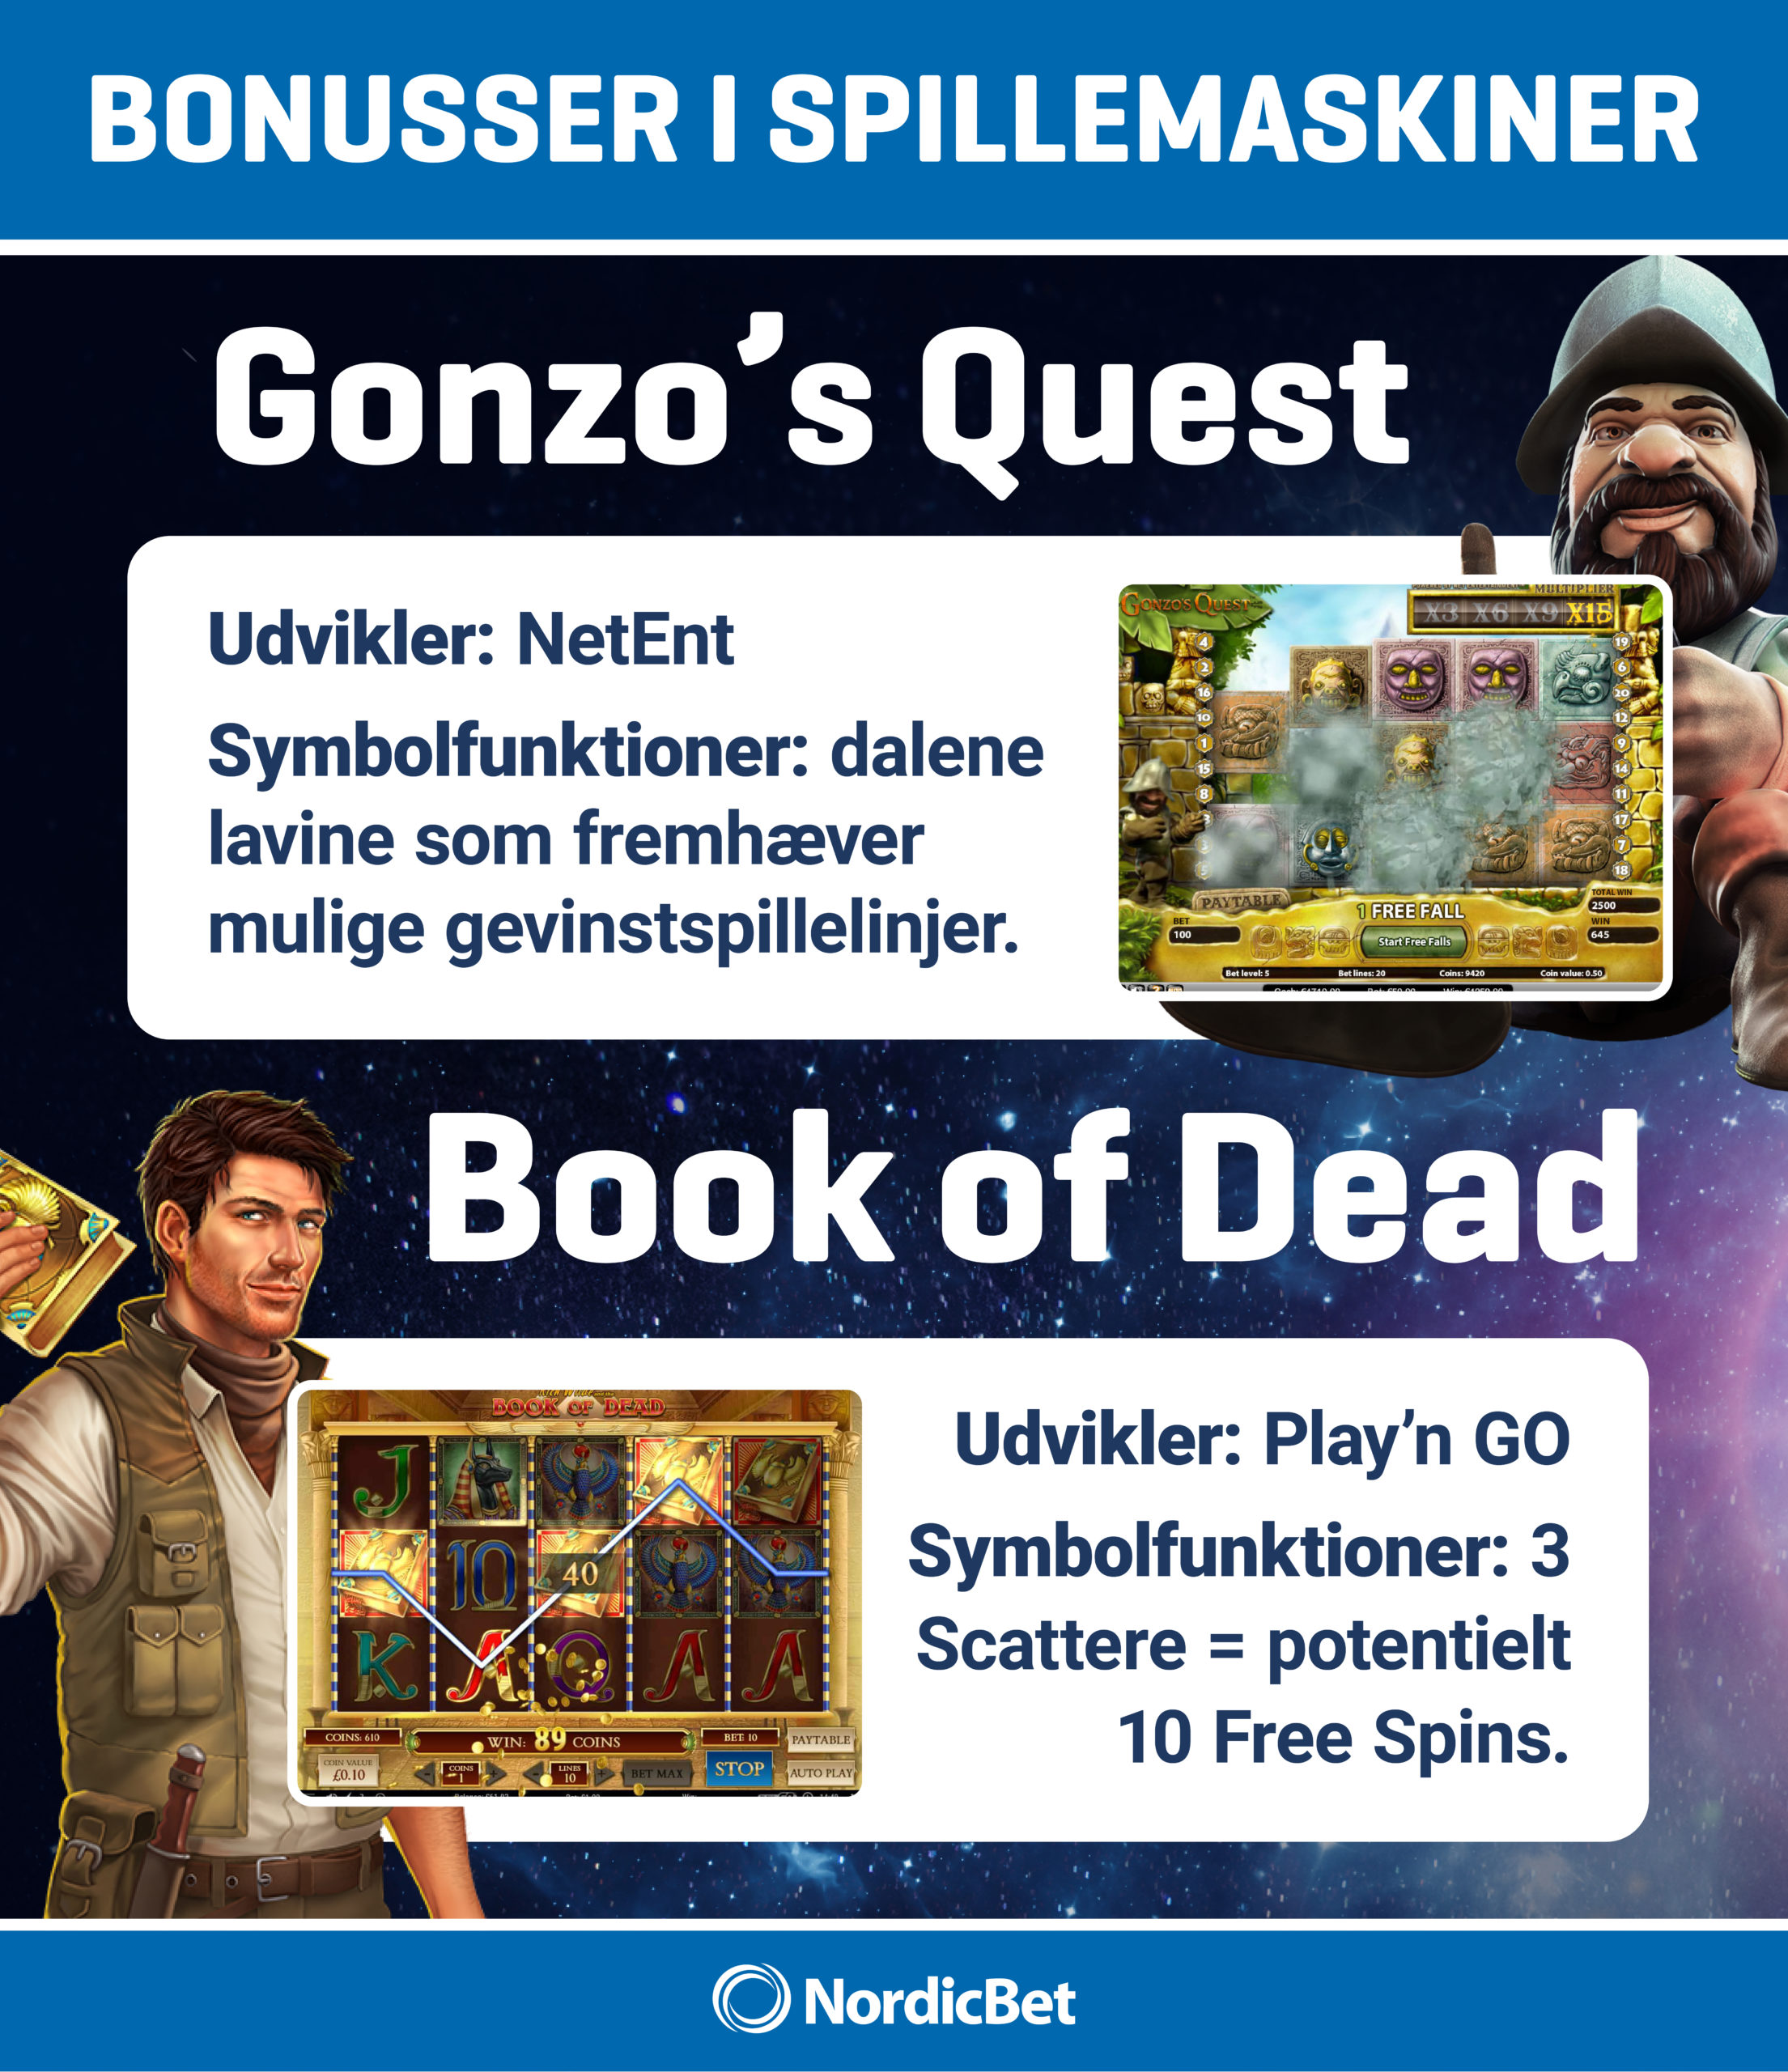 NordicBet Casino - prøv Book of Dead og Gonzo's Quest hos os. NordicBet Casino guide.